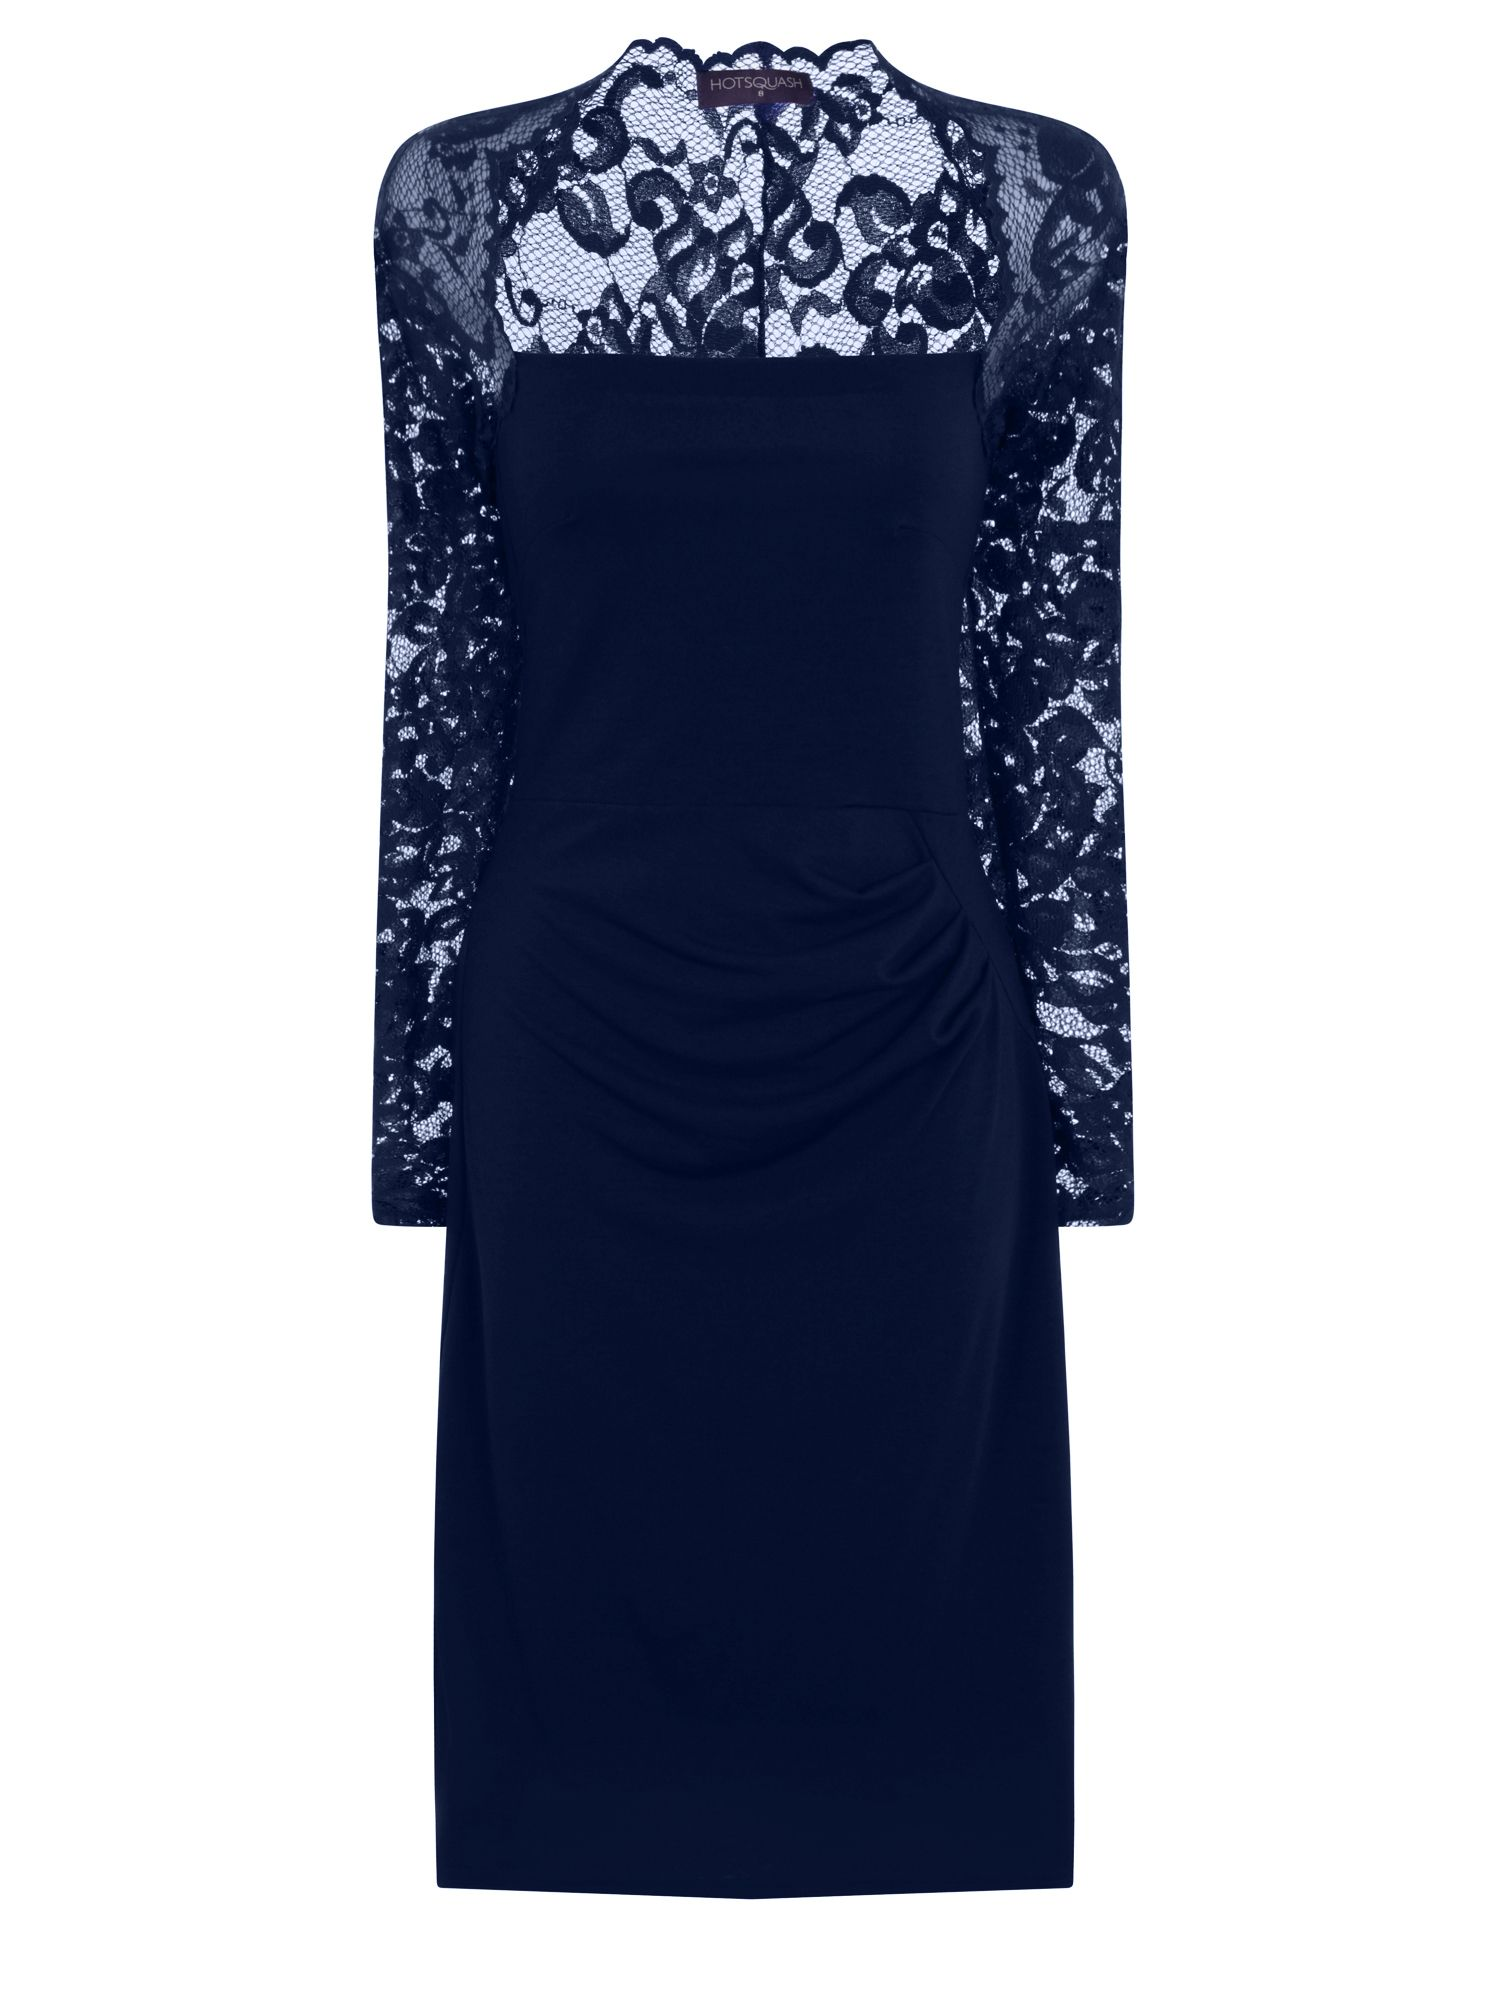 HotSquash Lace Sleeved Dress In Clever Fabric, Blue